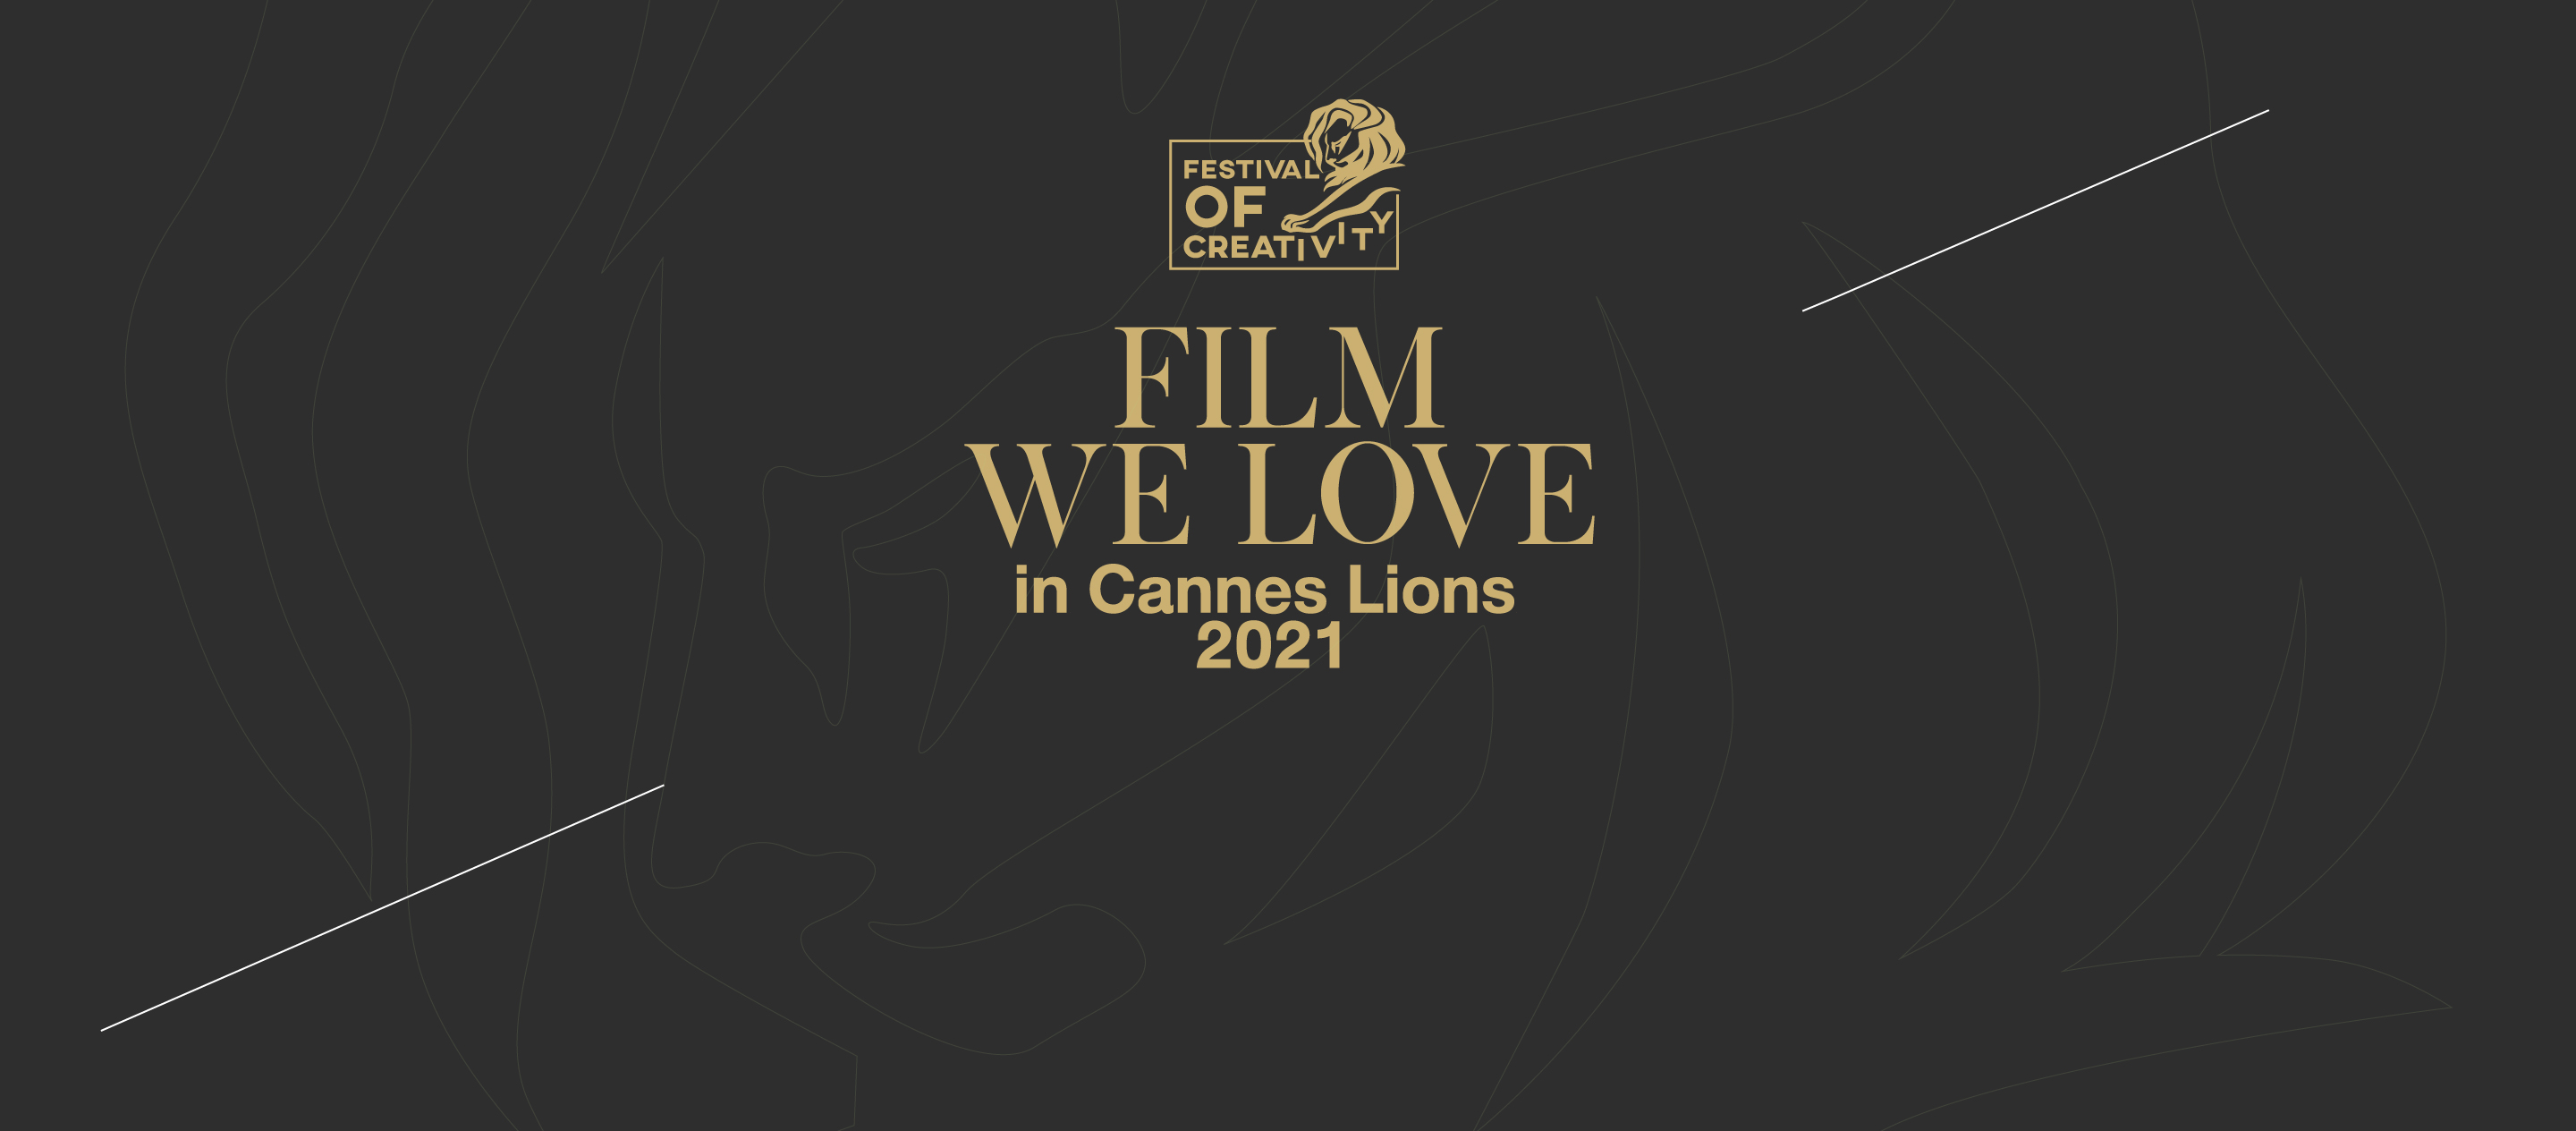 Films We Love in Cannes Lions 2021